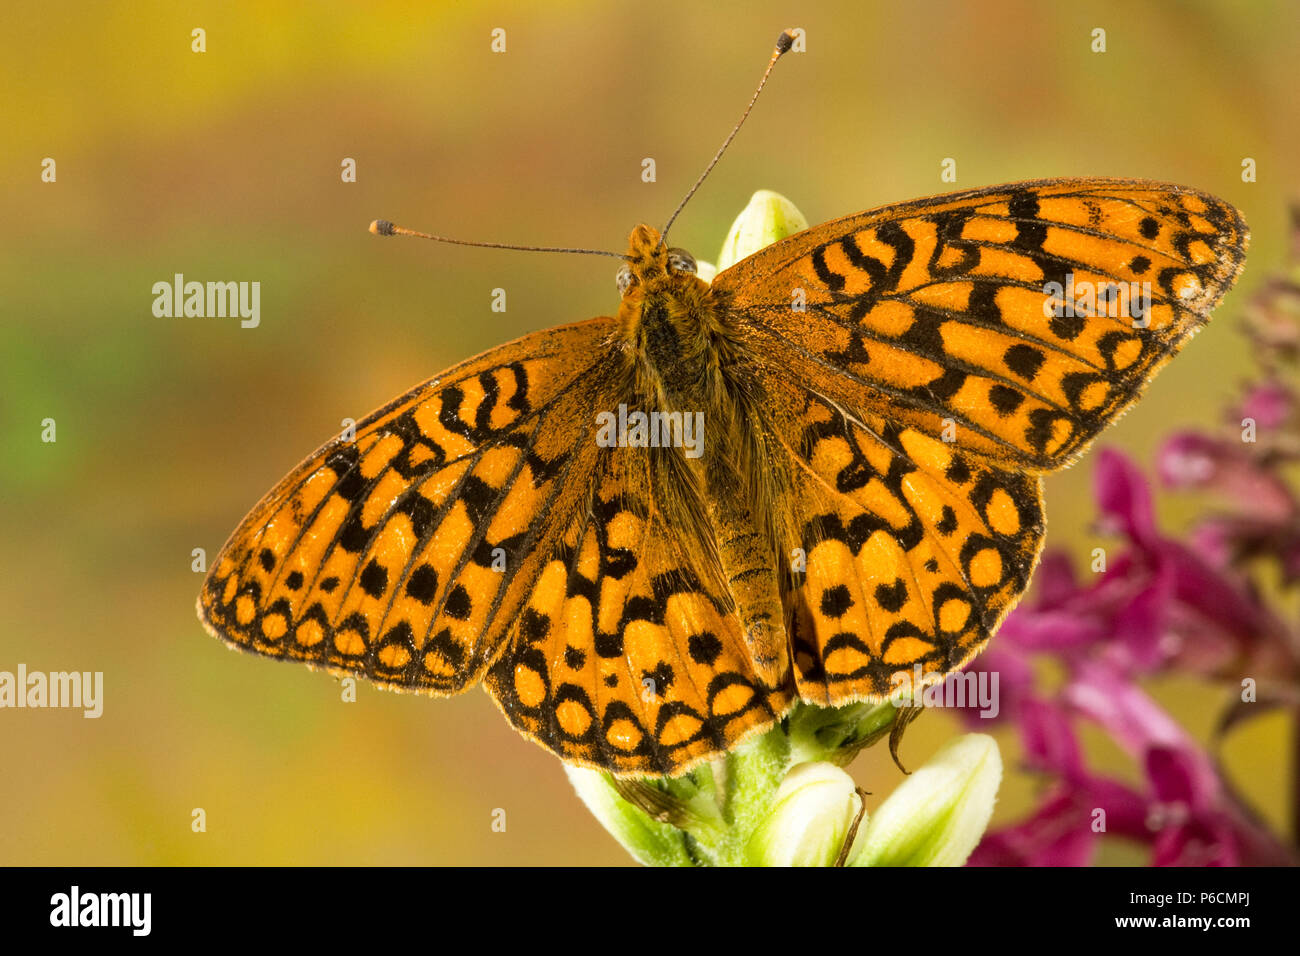 Dorsal view of a Northwestern Fritillary butterfly, Speyeria hesperis, on the fresh buds of a wildflower in the Cascade Mountains of central Oregon ne - Stock Image